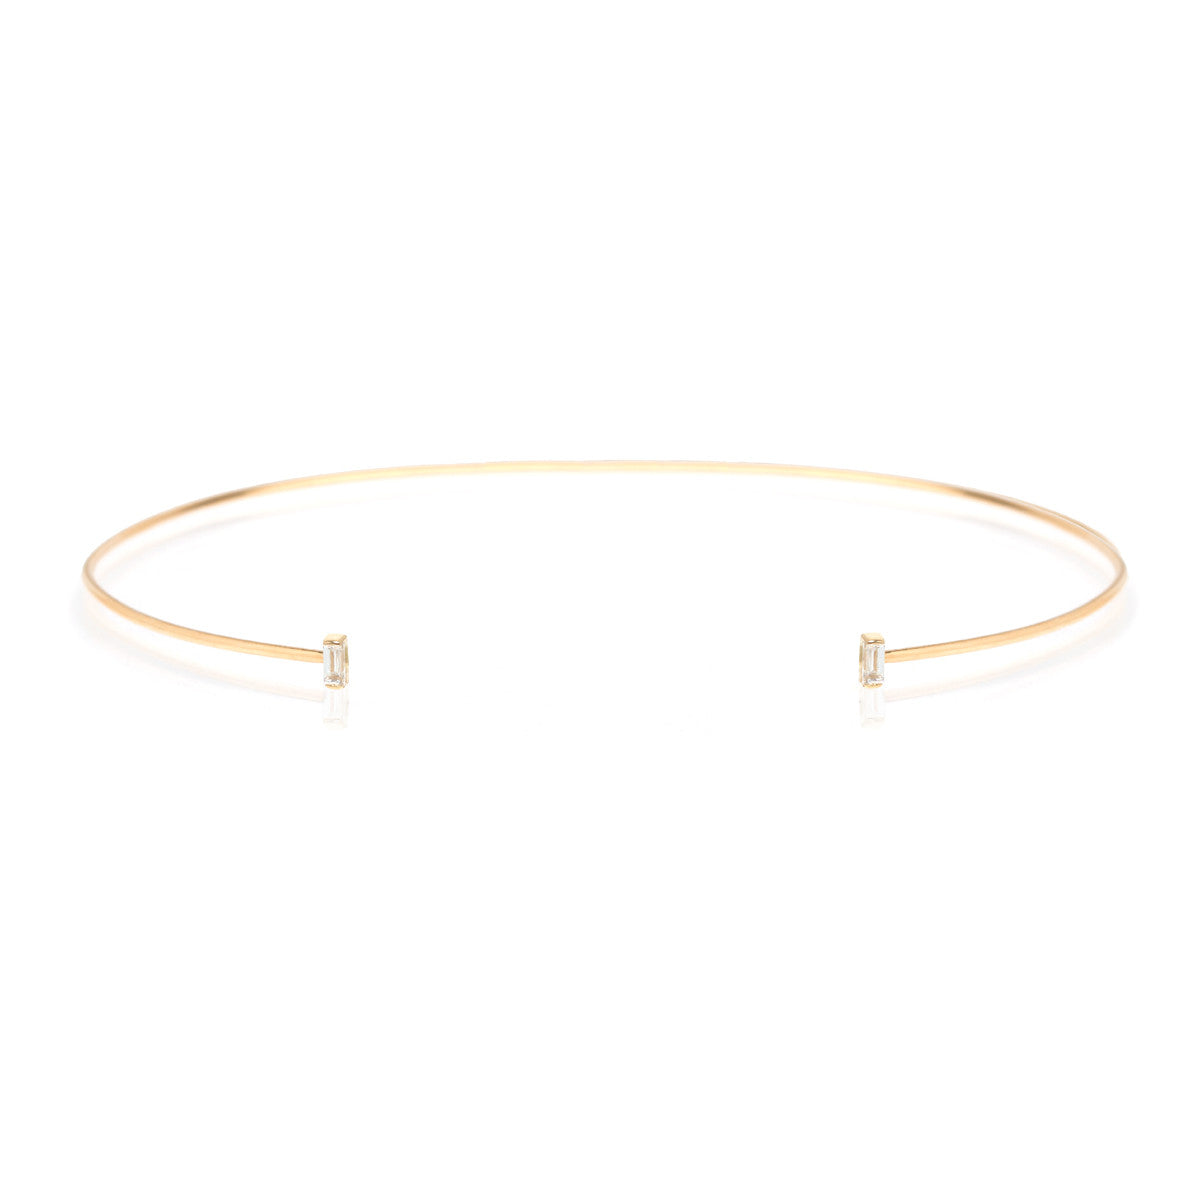 Zoë Chicco 14kt Yellow Gold White Baguette Diamond Open Wire Choker Necklace